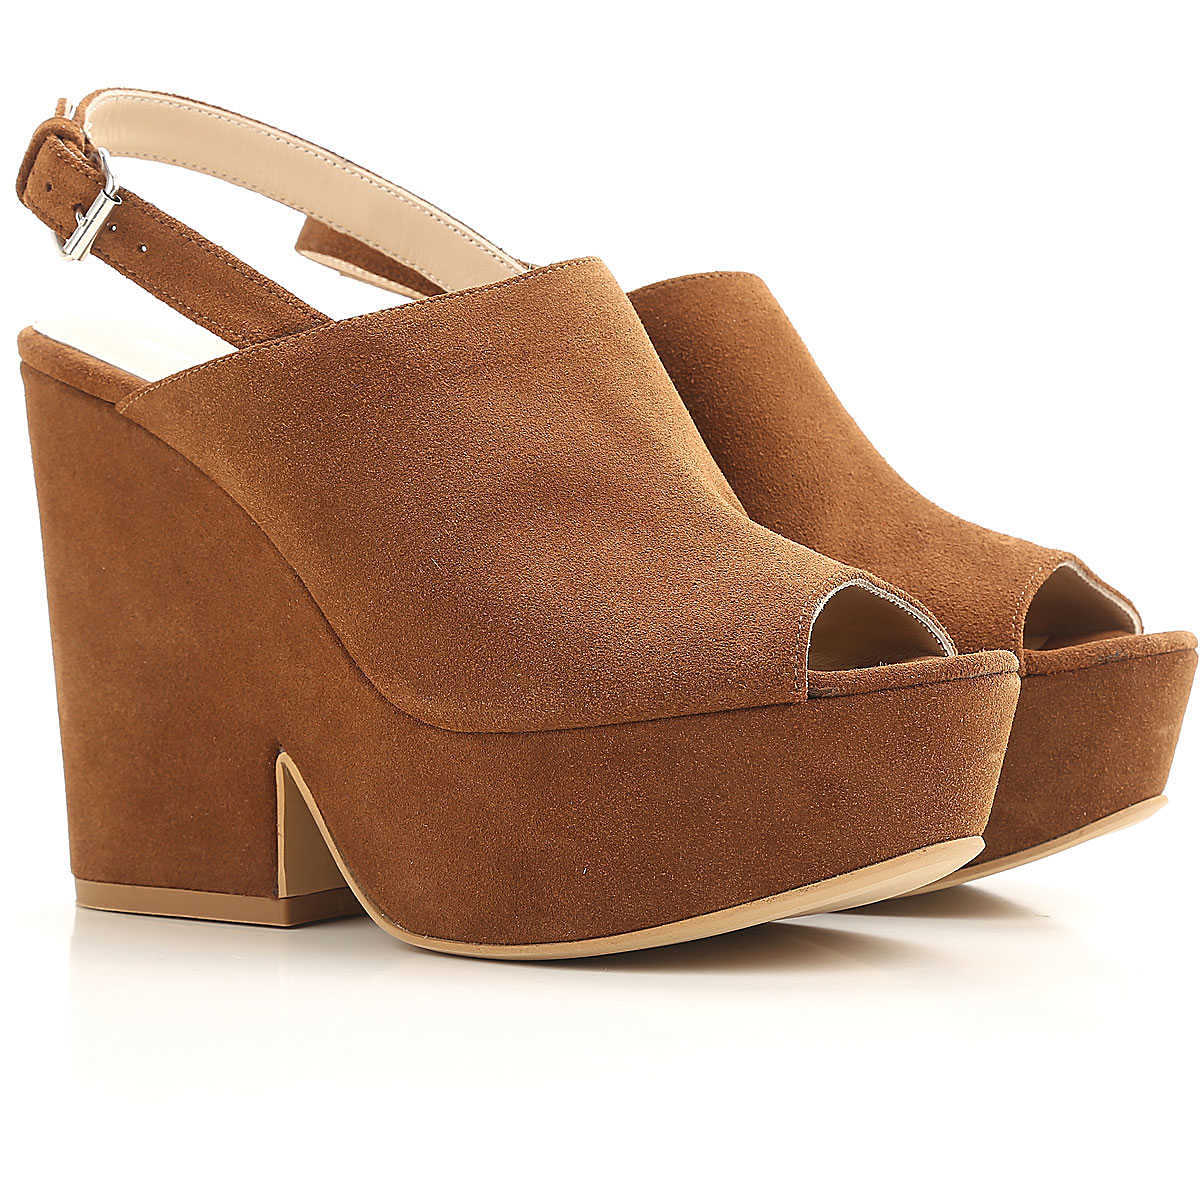 Strategia Wedges for Women in Outlet Tobacco Canada - GOOFASH - Womens HOUSE SHOES